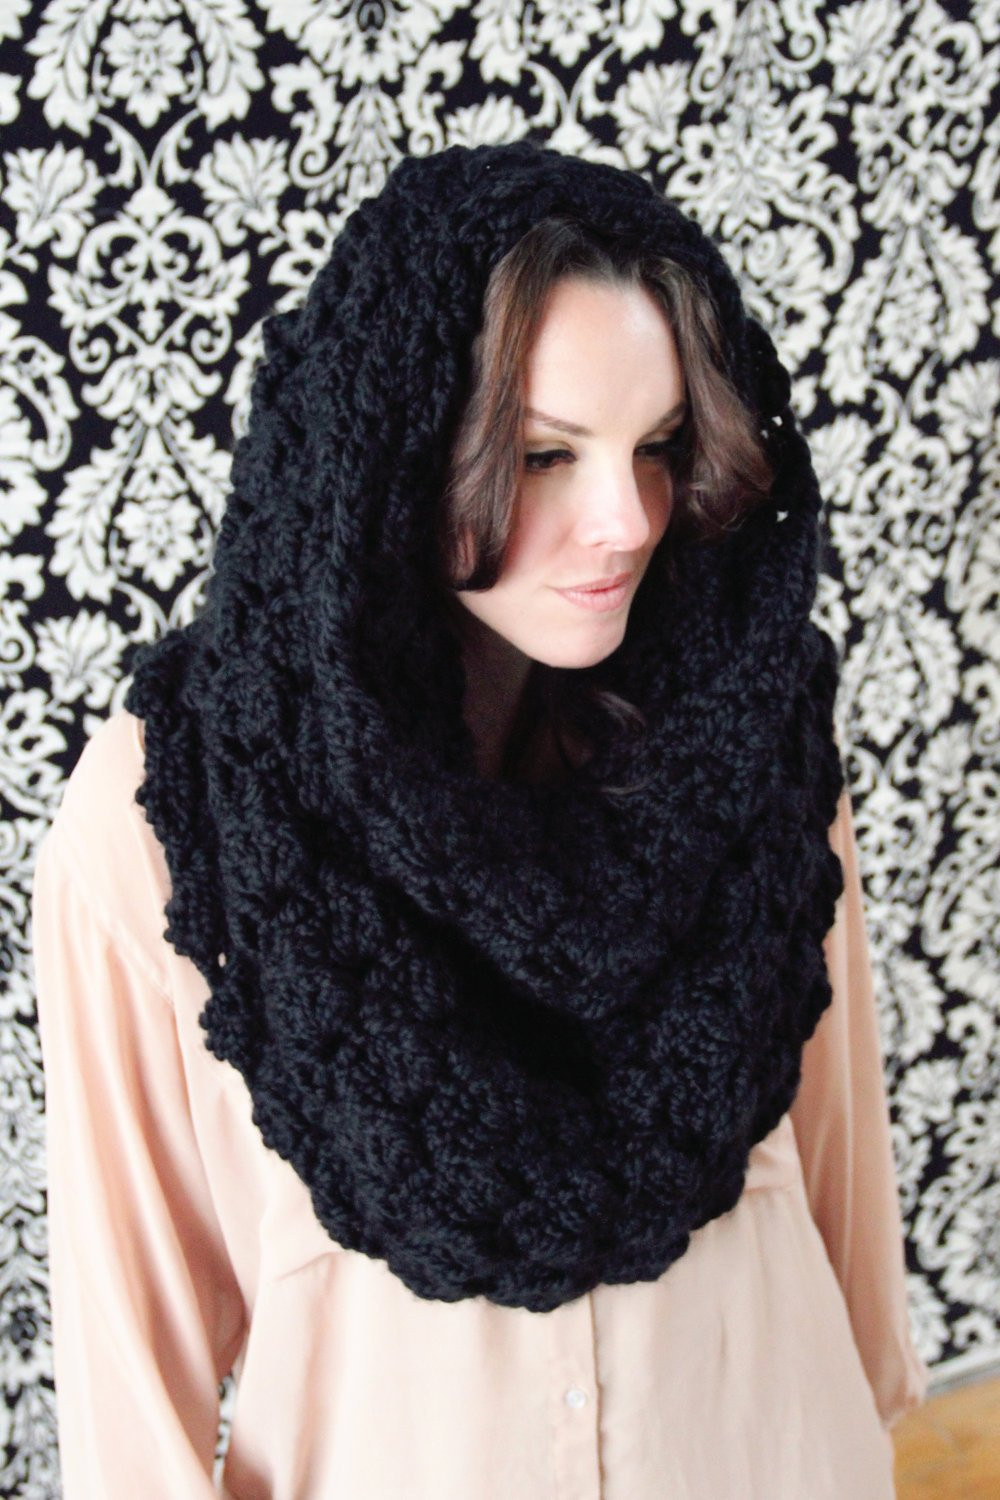 Crochet Cowl Scarf Fresh Scarf Crochet Pattern Hooded Cowl Convertible Wrap Over Sized Of Awesome 42 Pics Crochet Cowl Scarf